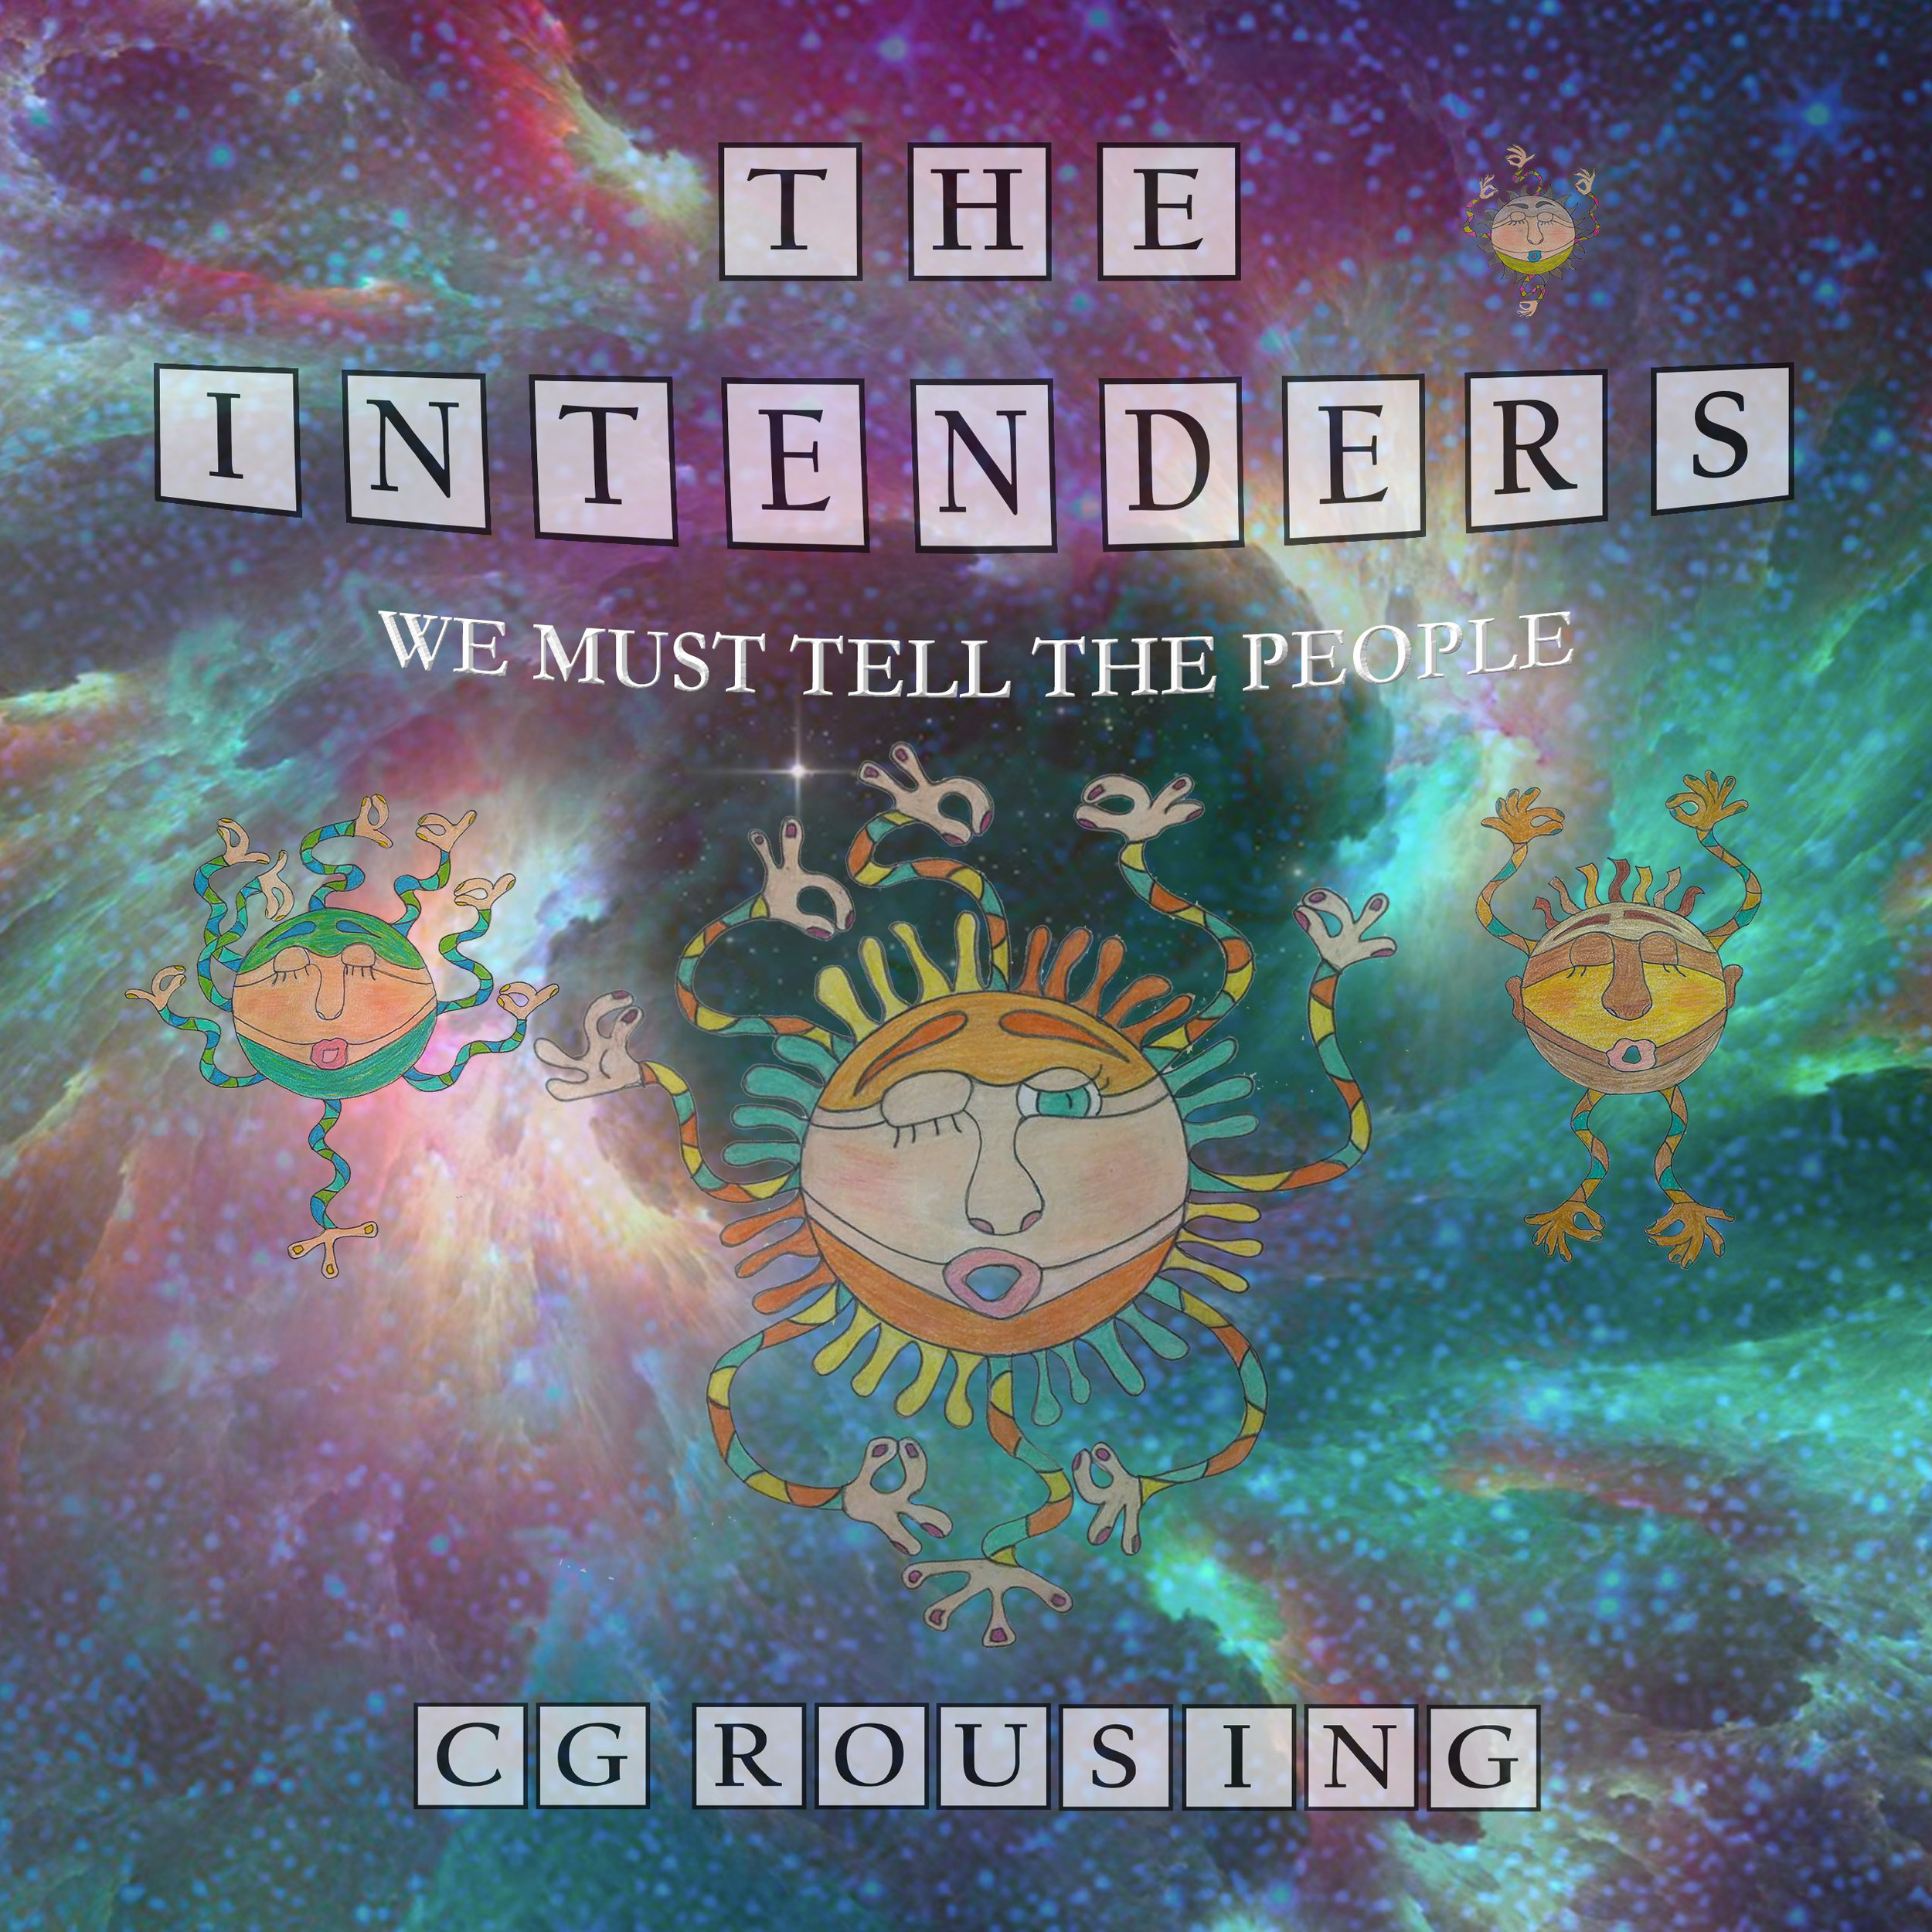 THE INTENDERS - WE MUST TELL THE PEOPLE by C.G. Rousing - Local Author Cover Image.jpg